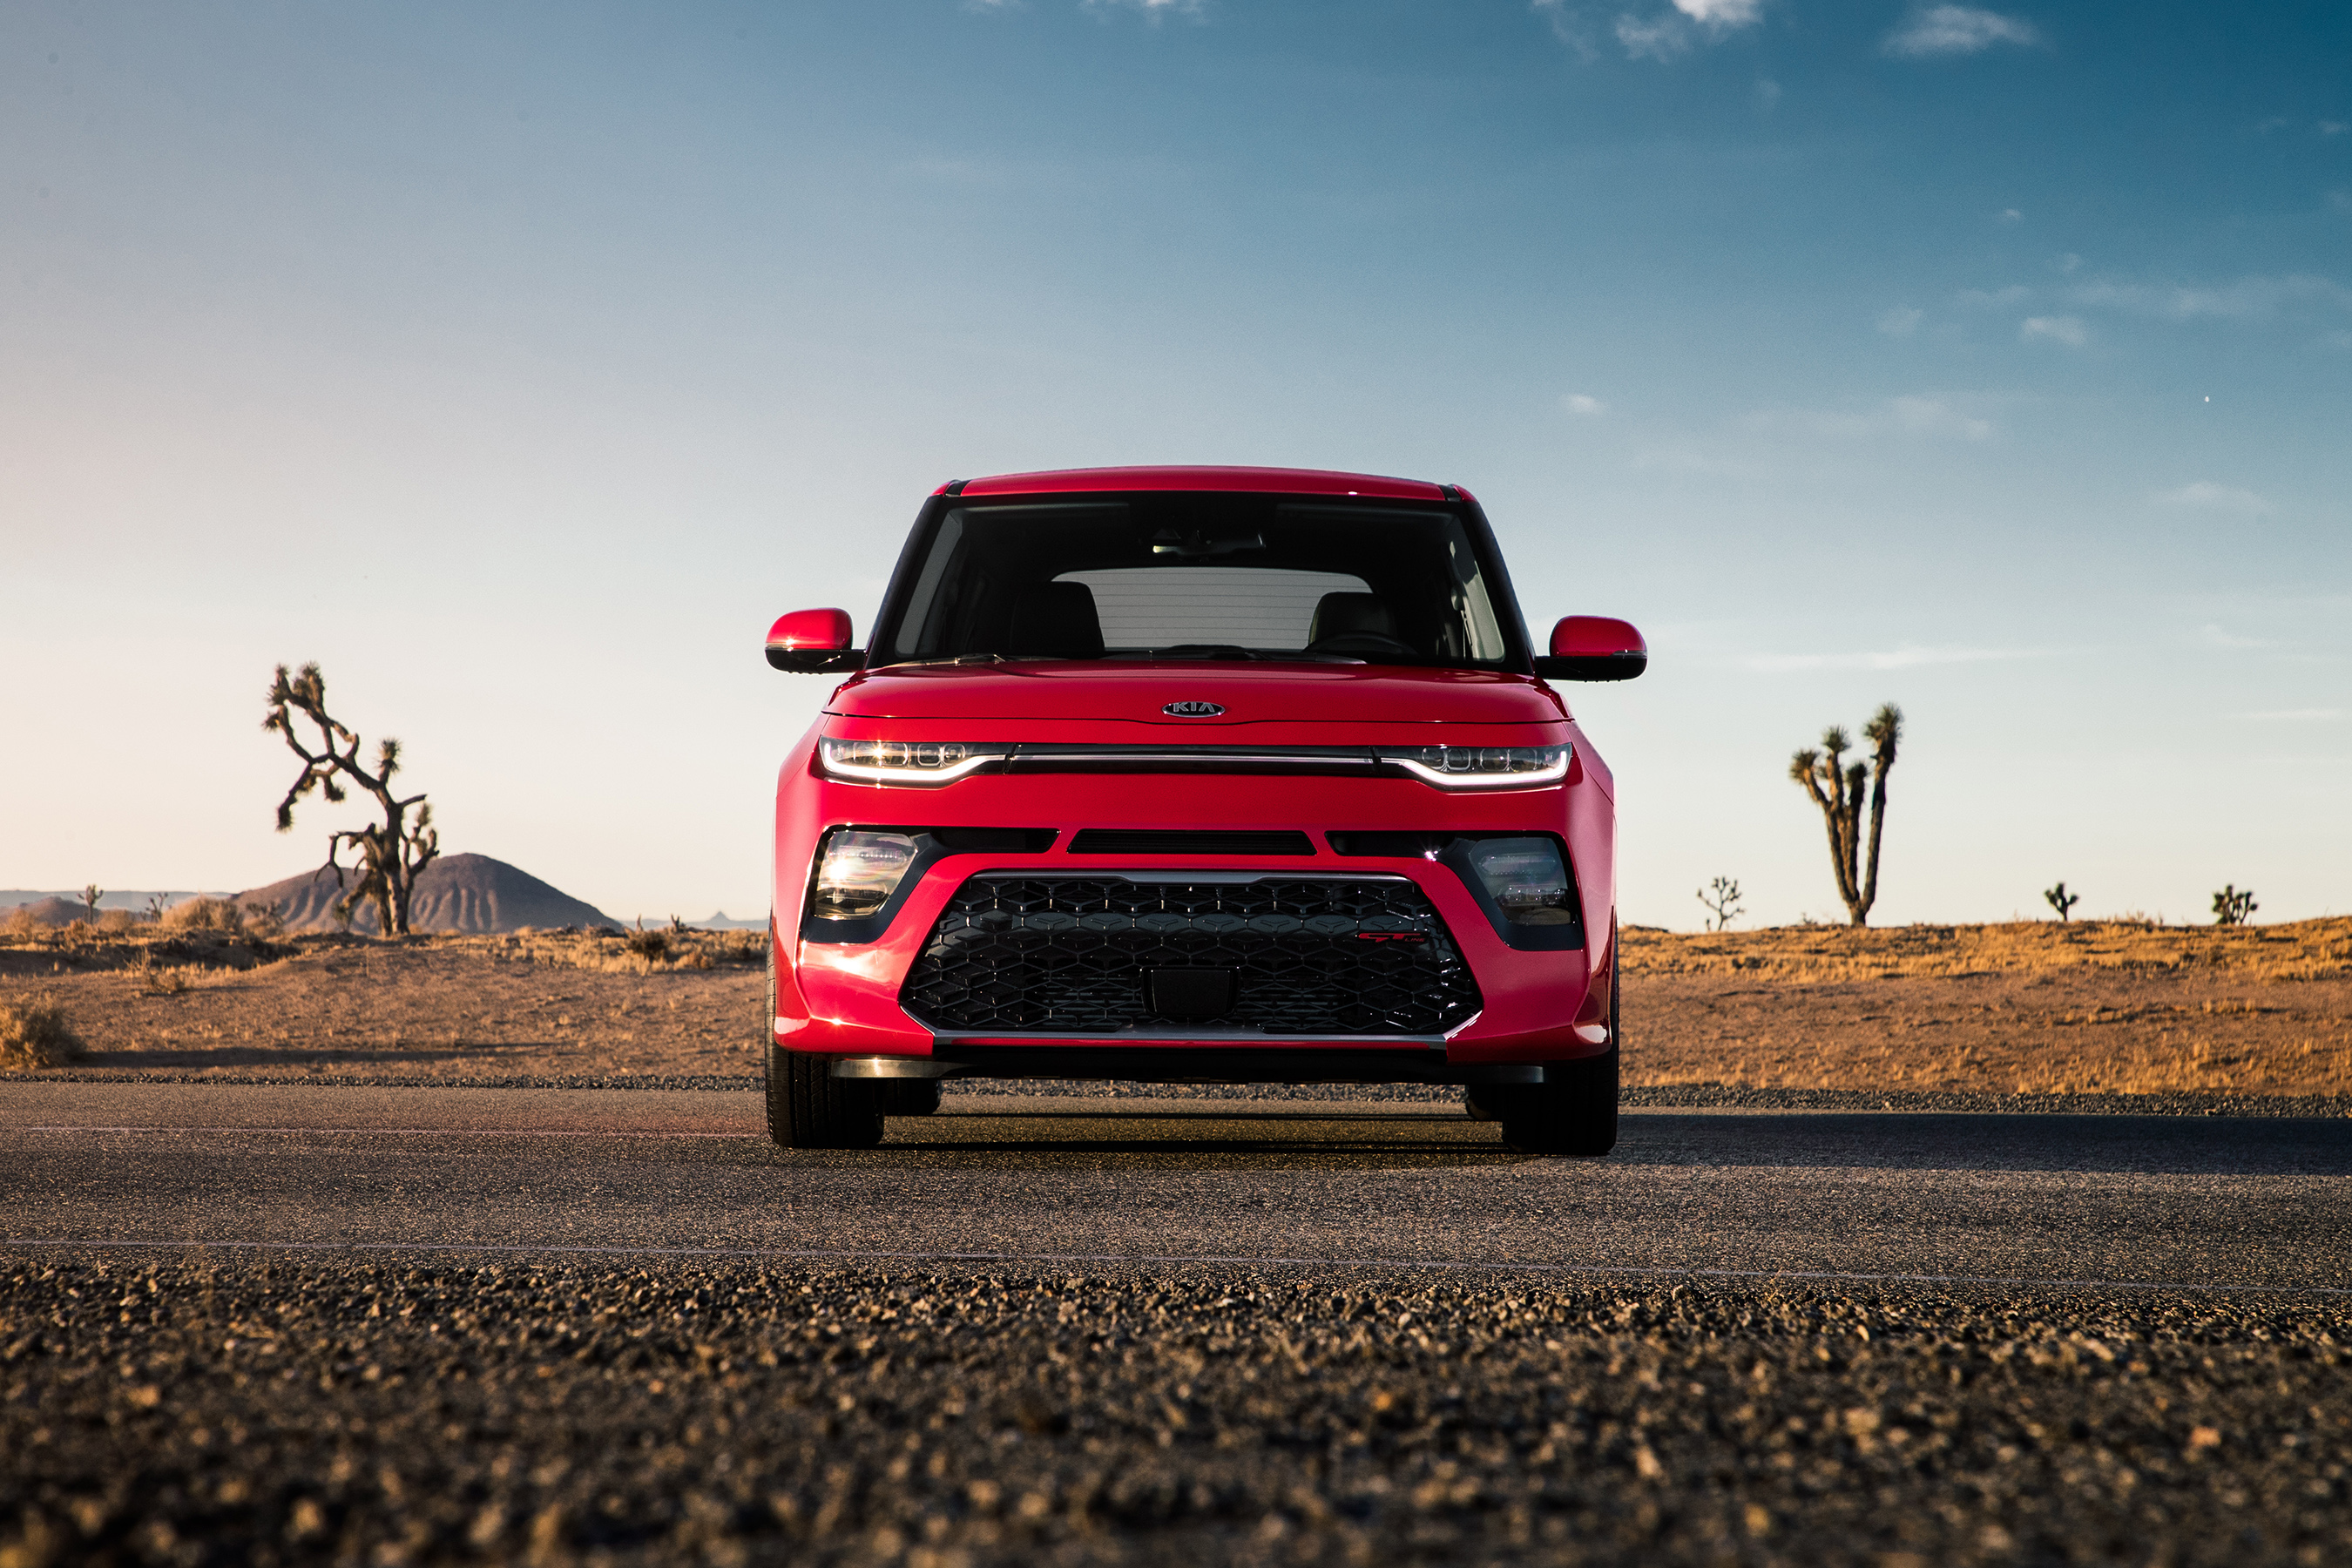 All-new third-generation Kia Soul continues to transcend unmatched style, peppy performance, thrilling technology, and urban practicality.